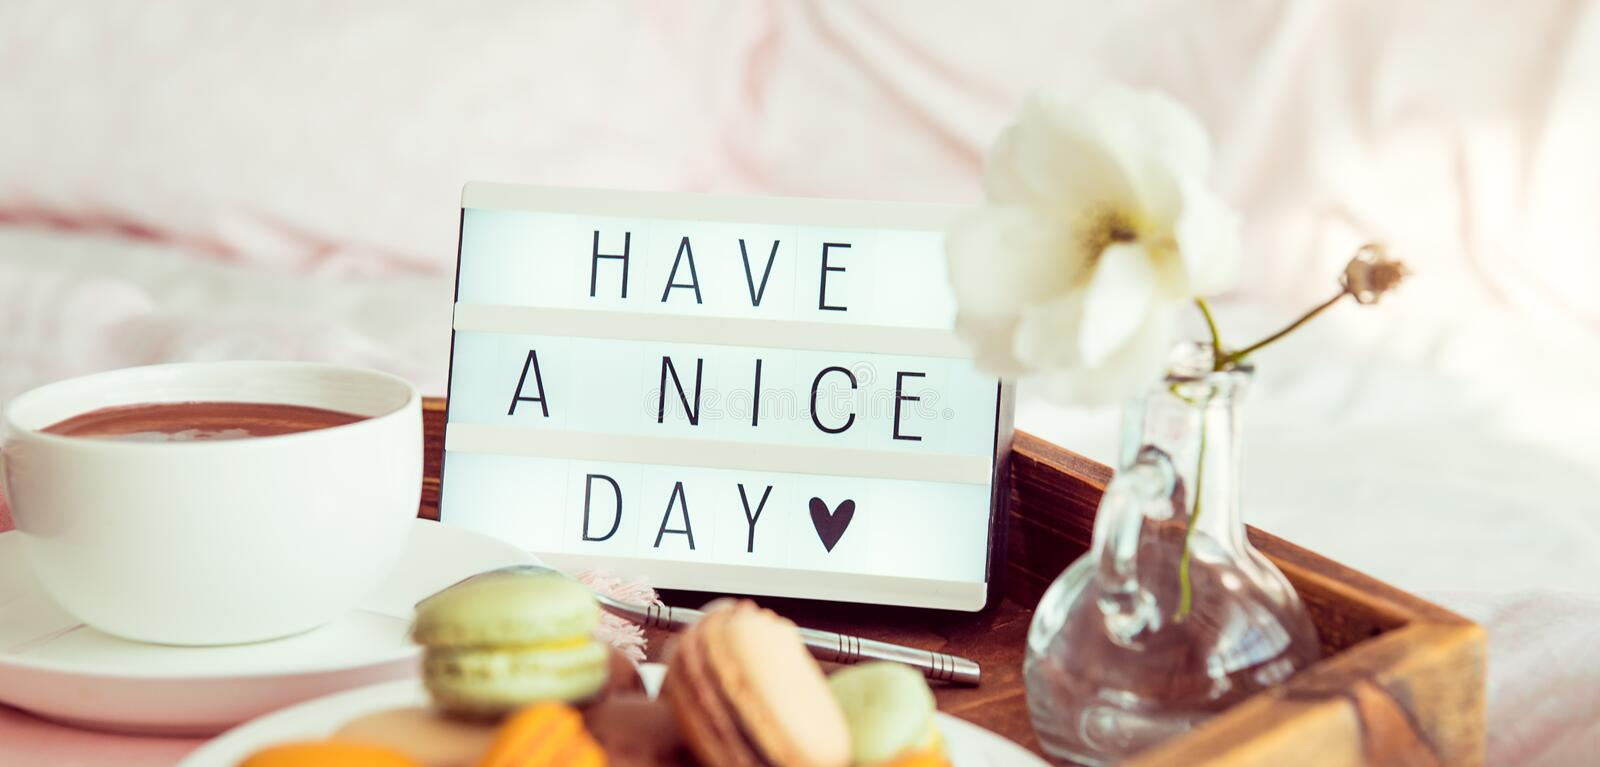 Close up Have a nice day text on lighted box on the tray with breakfast in bed. Cup of coffee, macaroons, flower in vase. Good. Morning mood. Hospitality, care stock photo